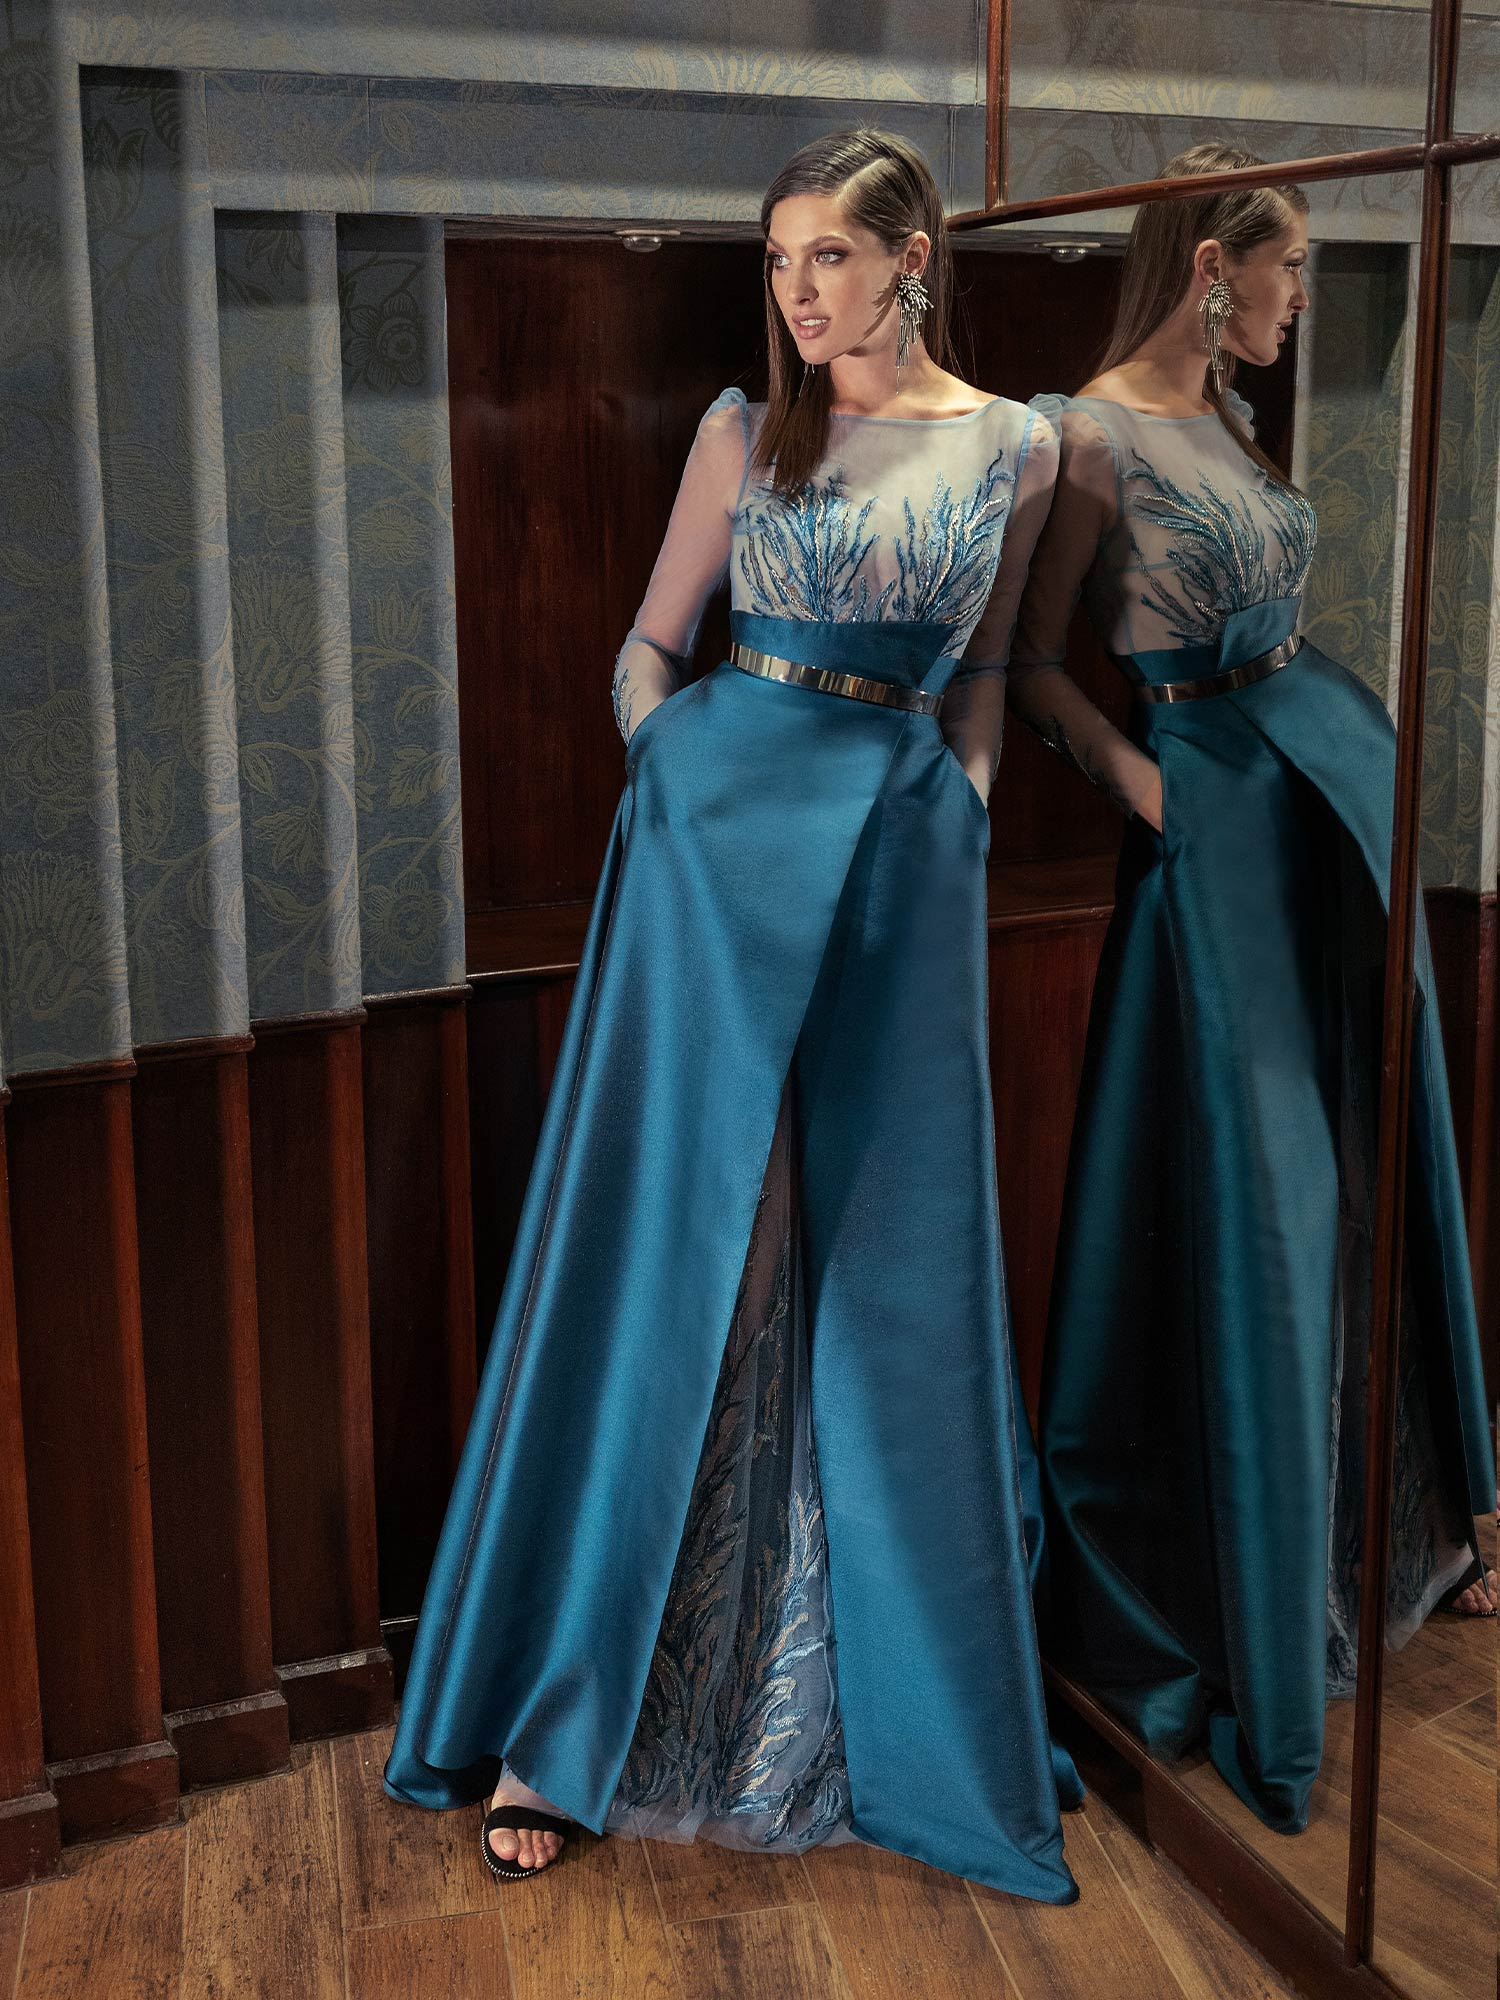 Style #615b, available in ivory, grey-blue, lilac, sea-green